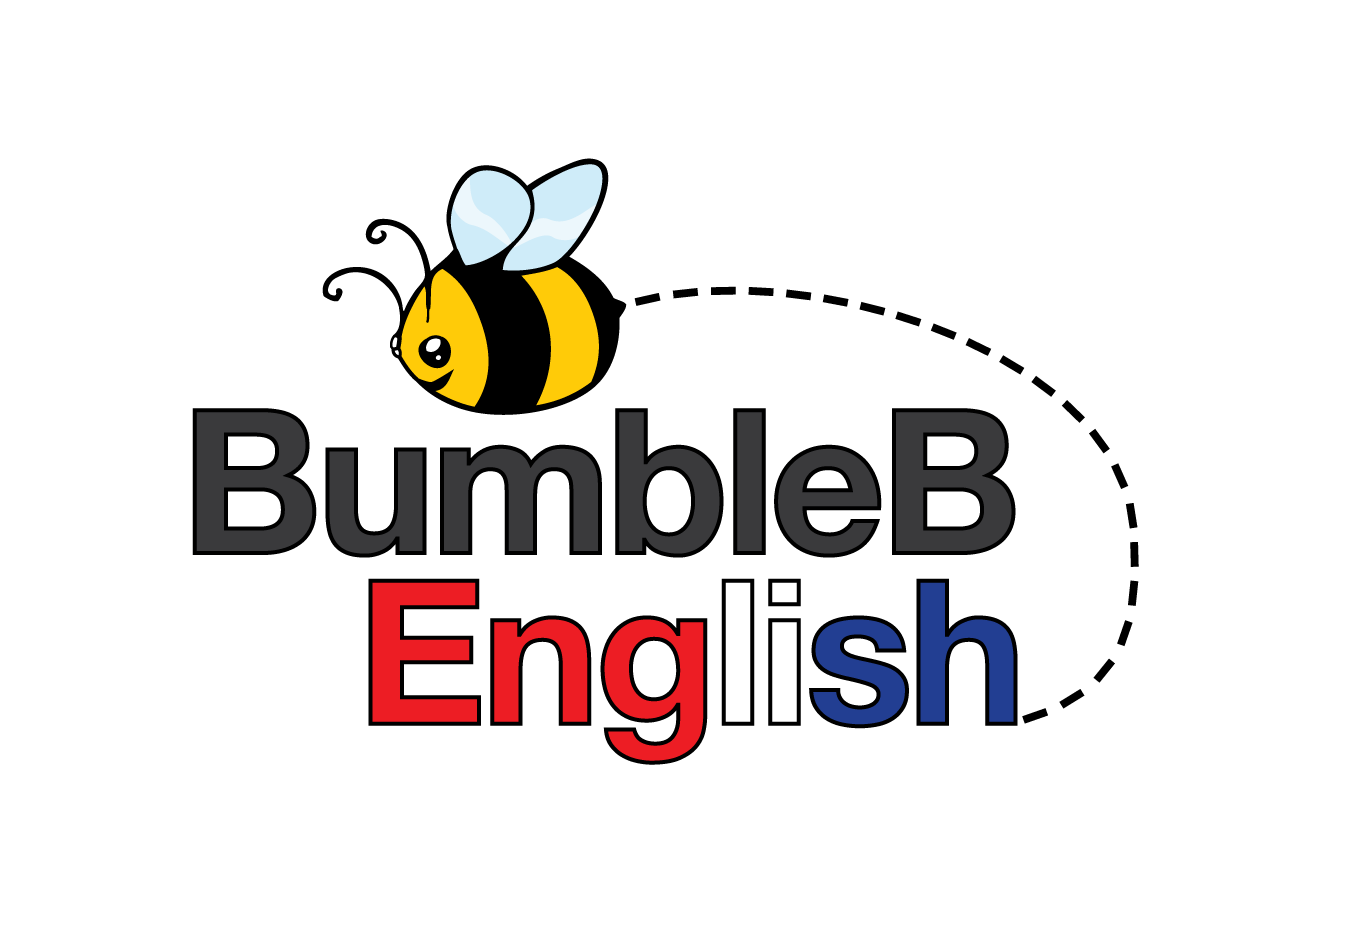 bumble bee english Logo by 	 FCJ_GRAPHICS